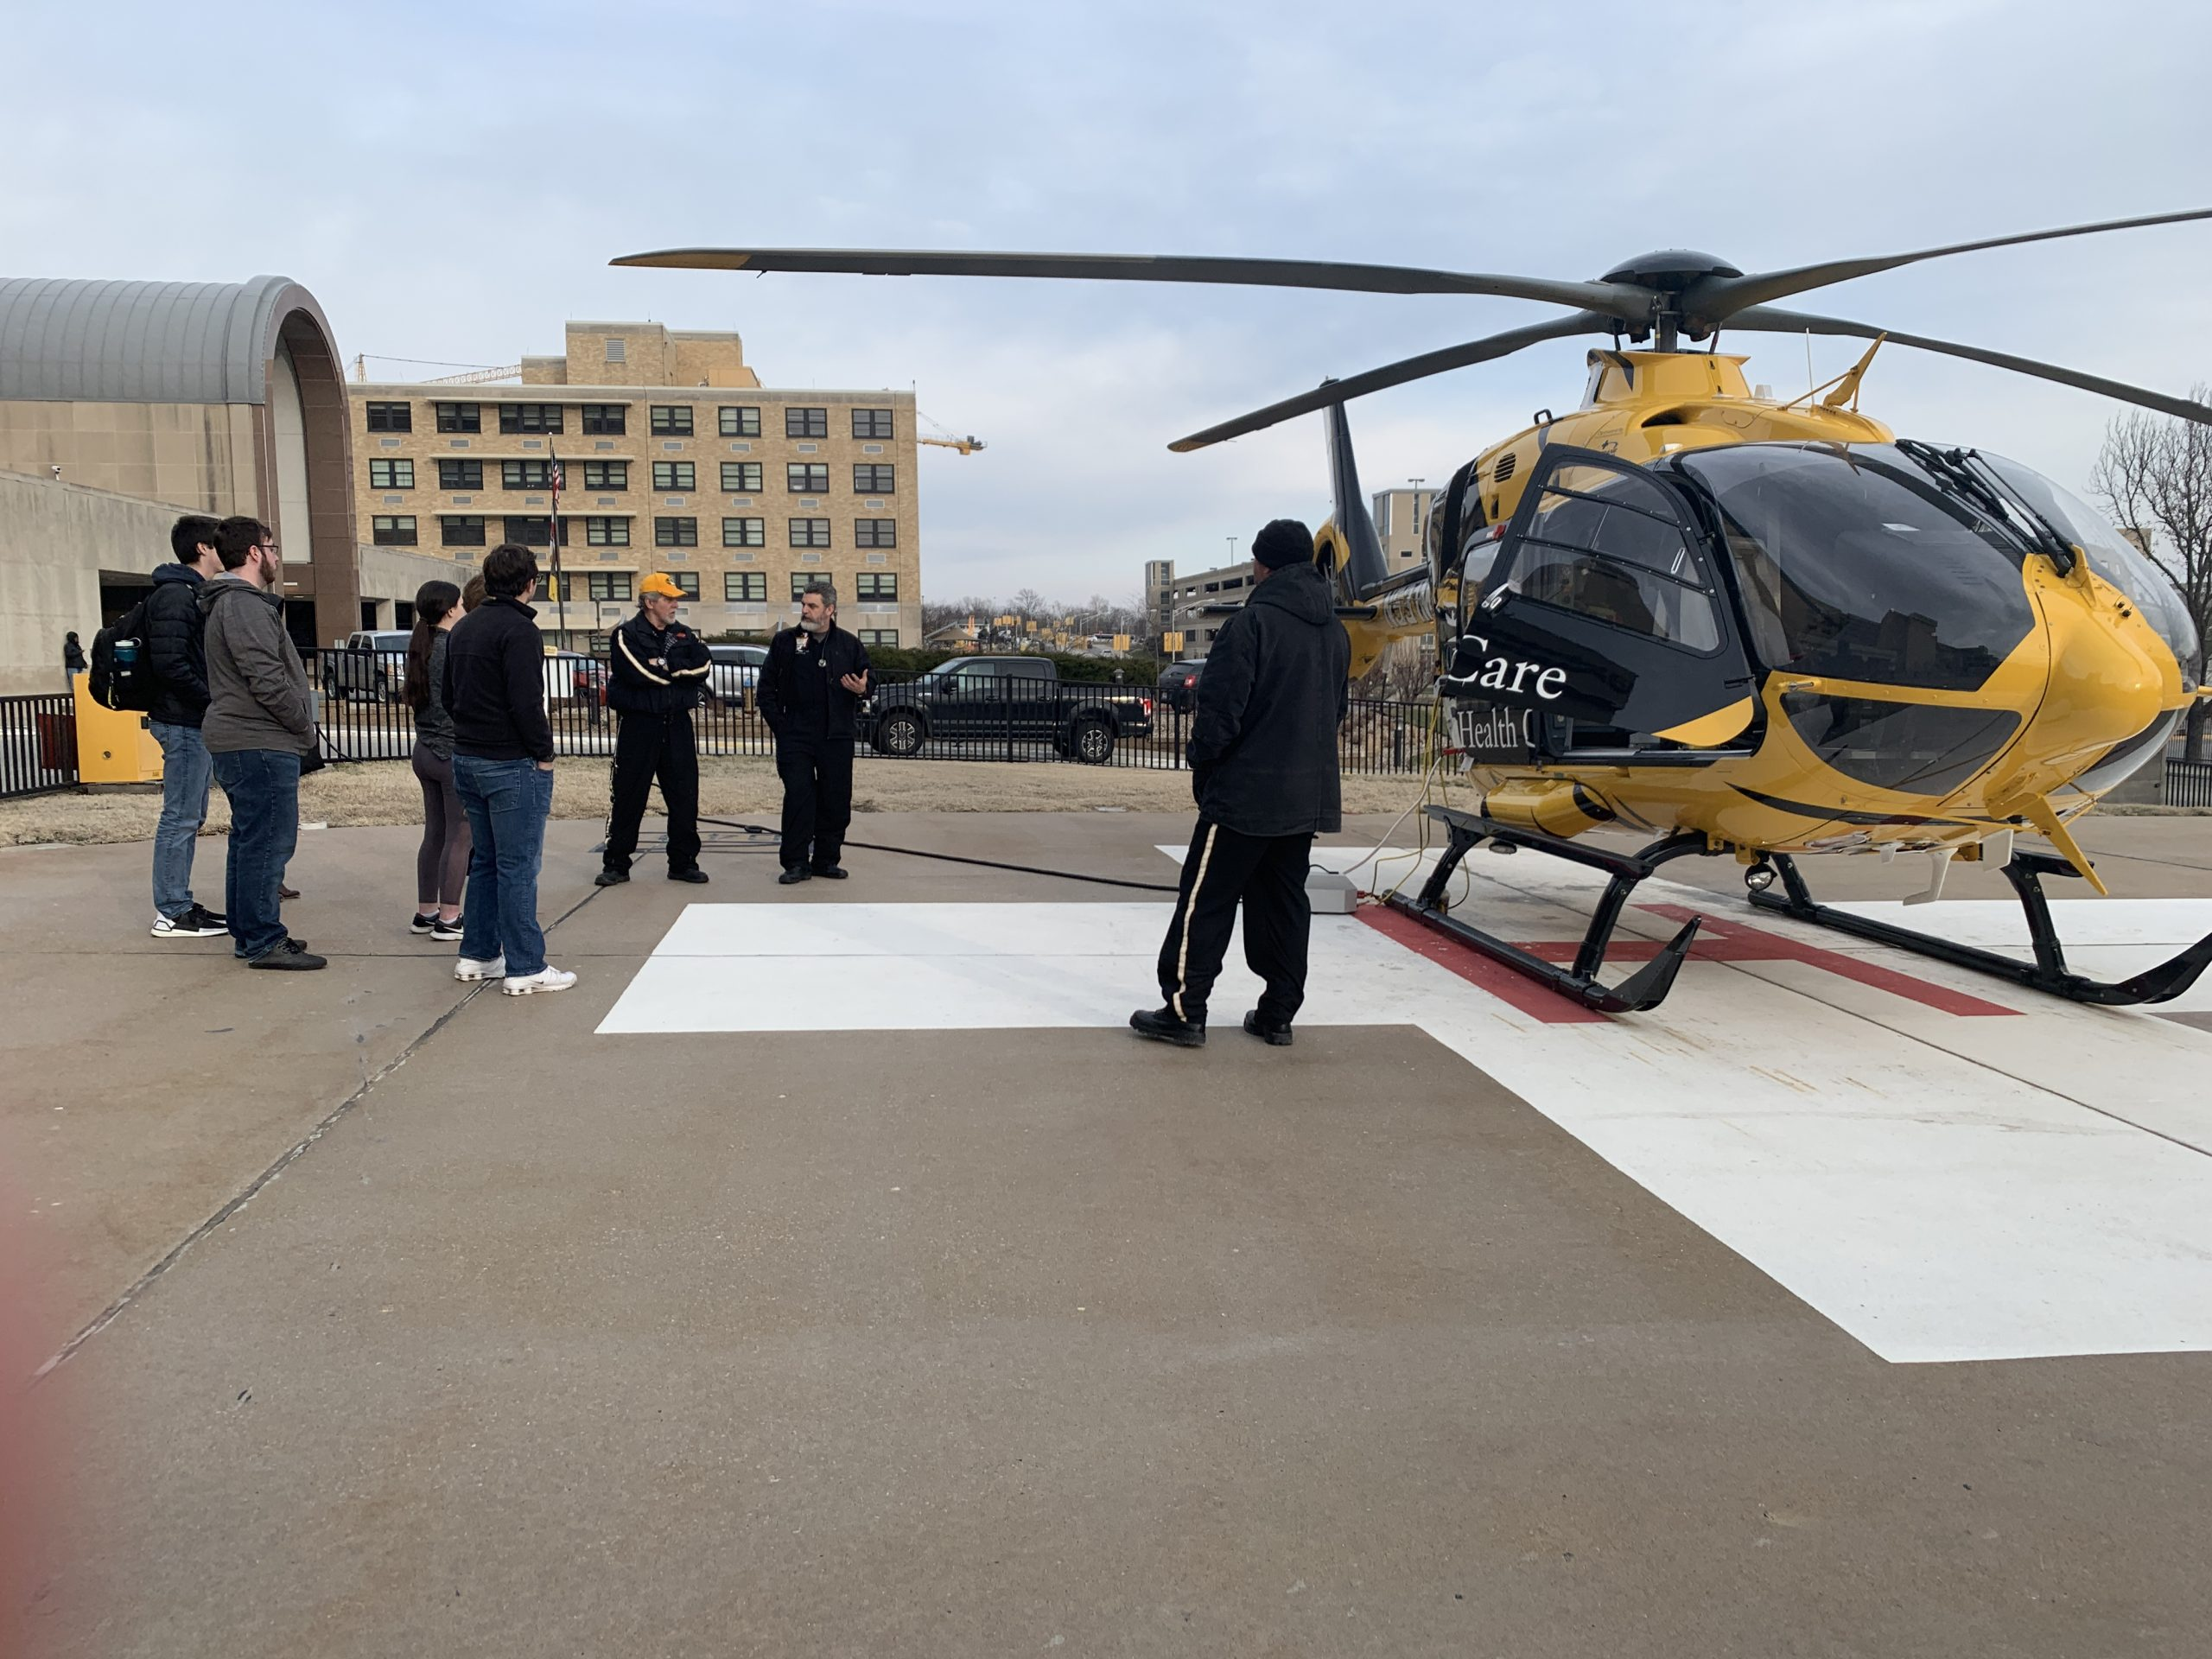 Students touring MU Health Care. This is a picutre of students learning about the ambulatory services as they stand next to the MU Health helicopter.